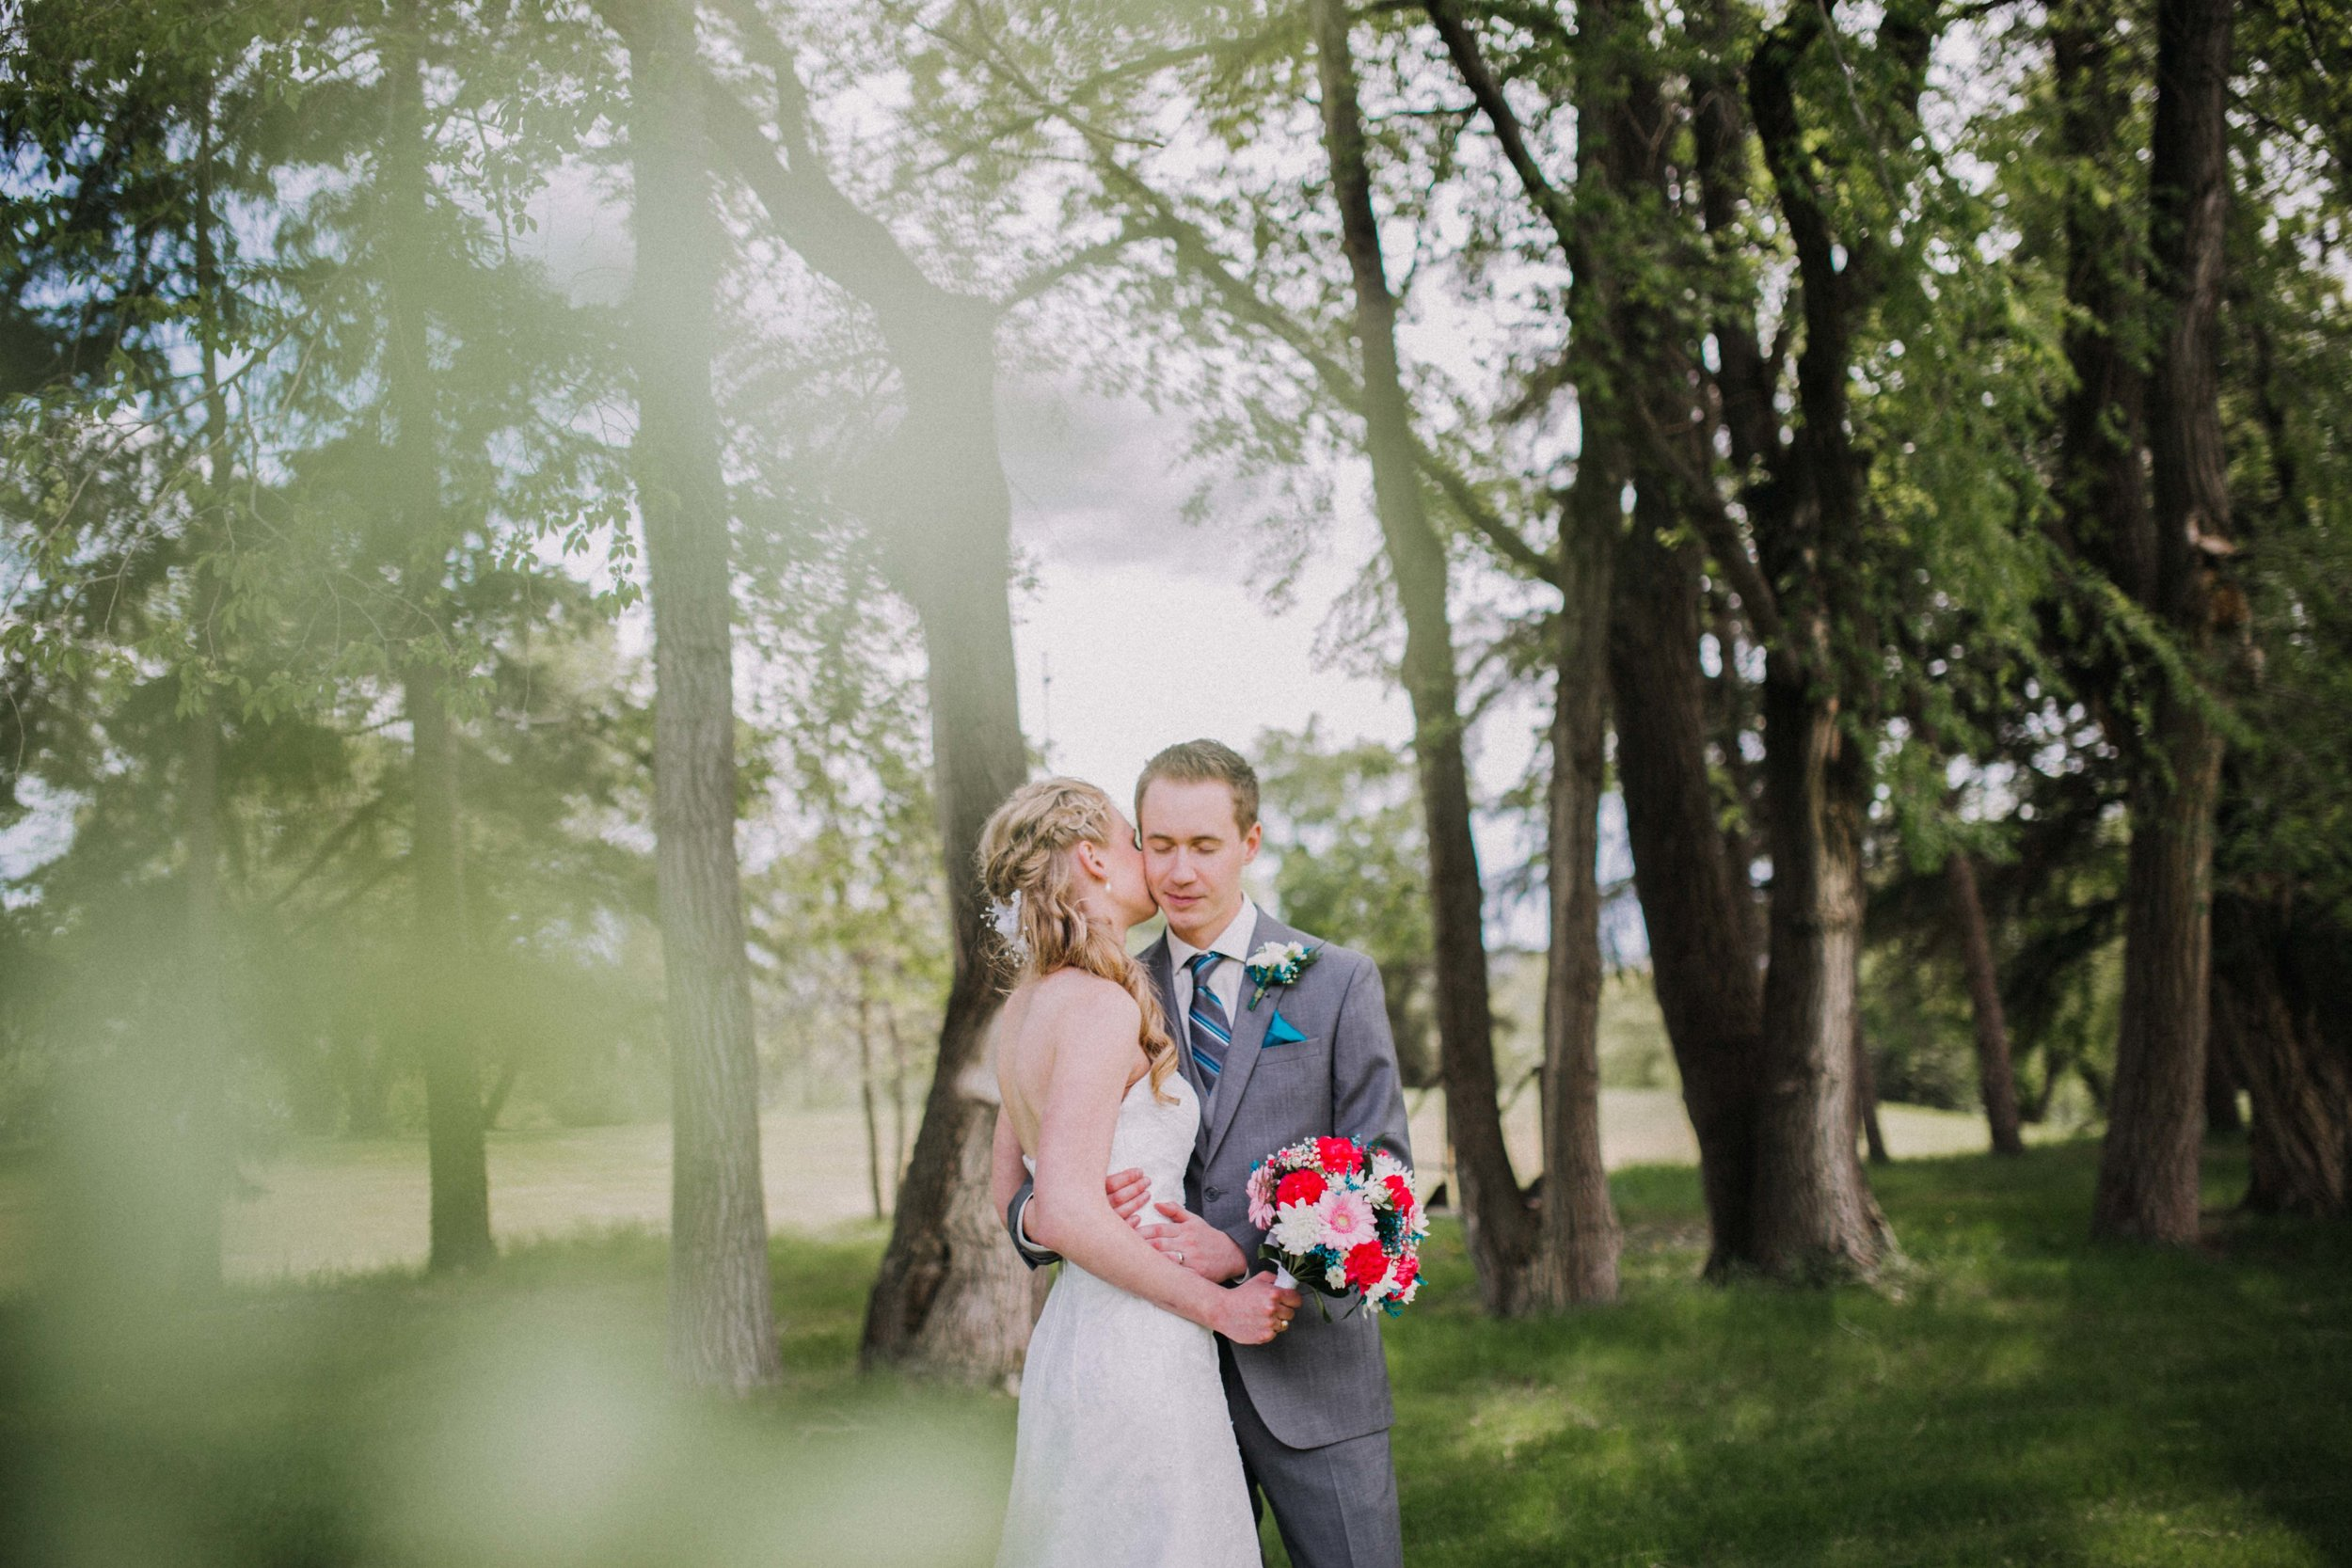 """Bryce and Teresa wanted their big day to be simple, made up only of love, family, the right people and the perfect setting, all of which came together beautifully for their intimate and romantic wedding day. Simple and chic Brandon wedding certainly made a case for the """"less is more"""" mantra.Keeping the wedding small and intimate was a priority for the couple. Congratulations Bryce + Teresa. Your day was amazing!"""